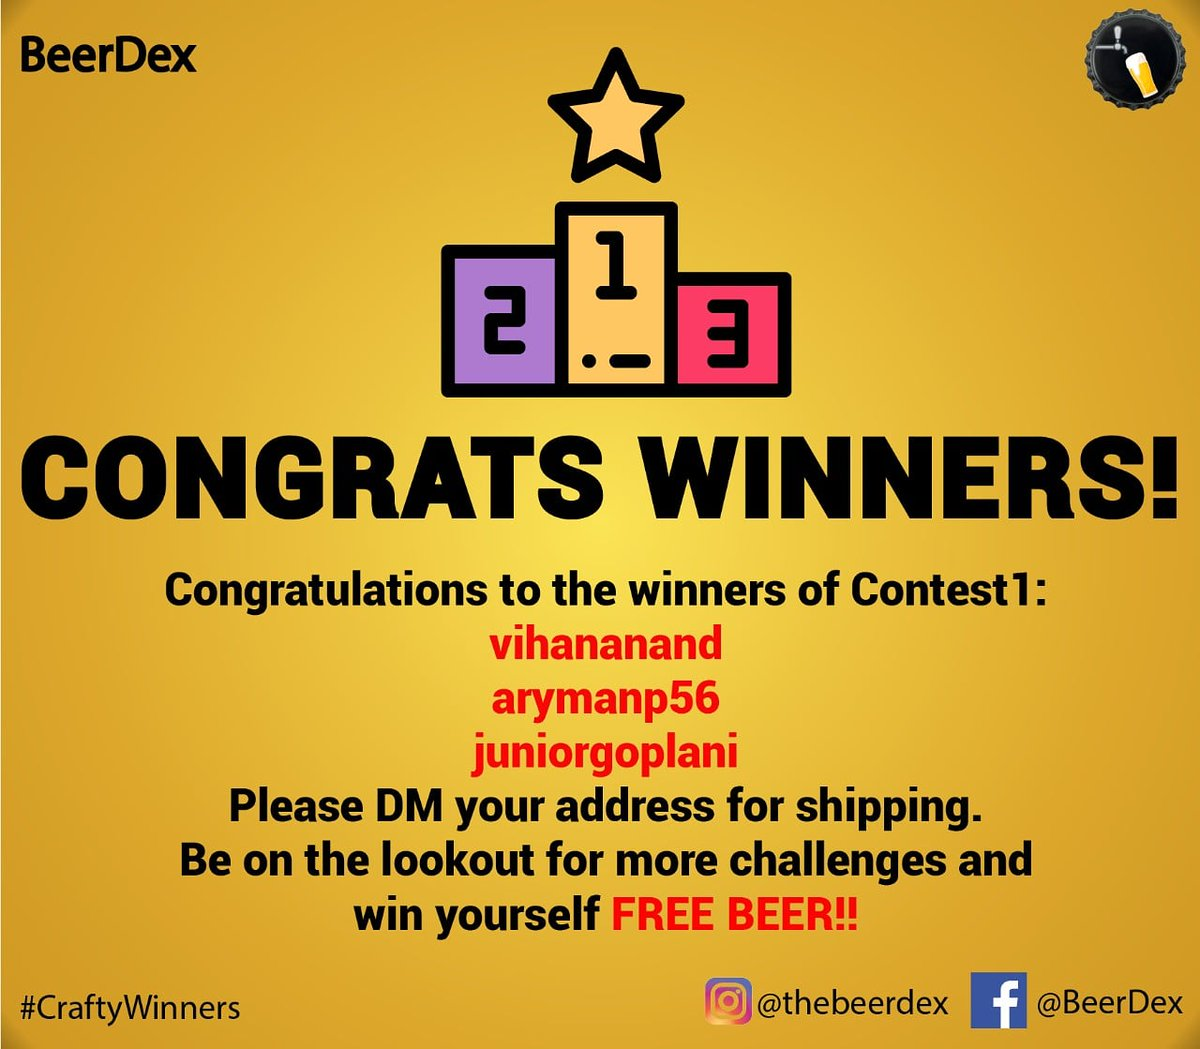 The results of the contest are out!  Congratulations to our top 3 winners! For the rest of you, there are still 6 cases of beer waiting to be shipped! Some more exciting contests will be coming up soon. Stay tuned for more updates for a chance to win some free beer! #craftbeer pic.twitter.com/fFtTFll96K